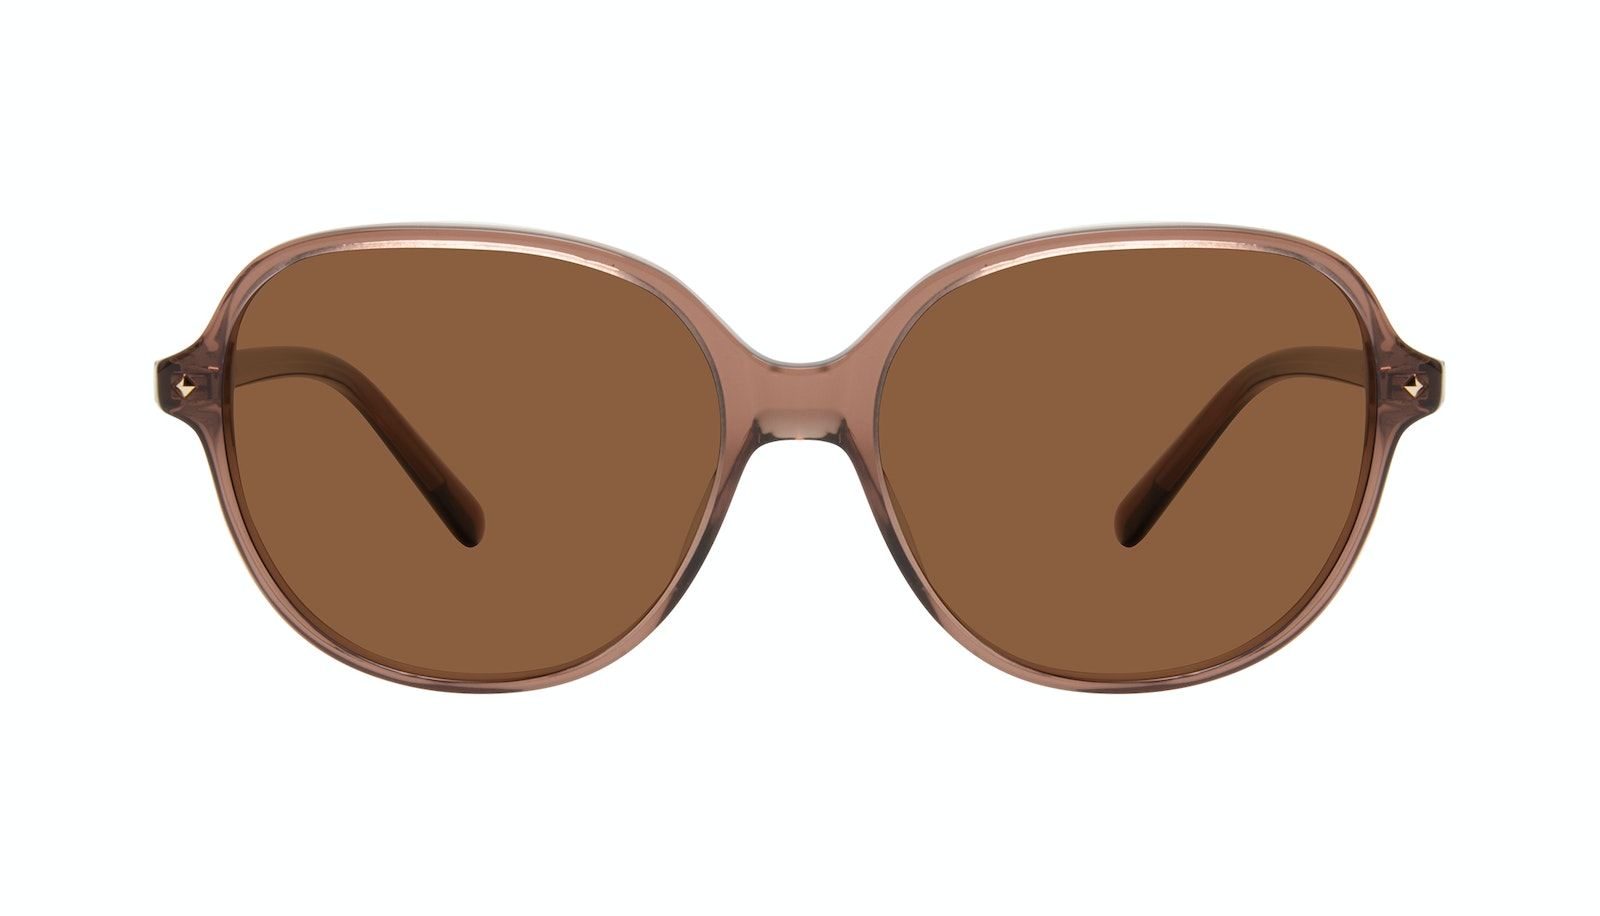 Affordable Fashion Glasses Round Sunglasses Women Covet Terra